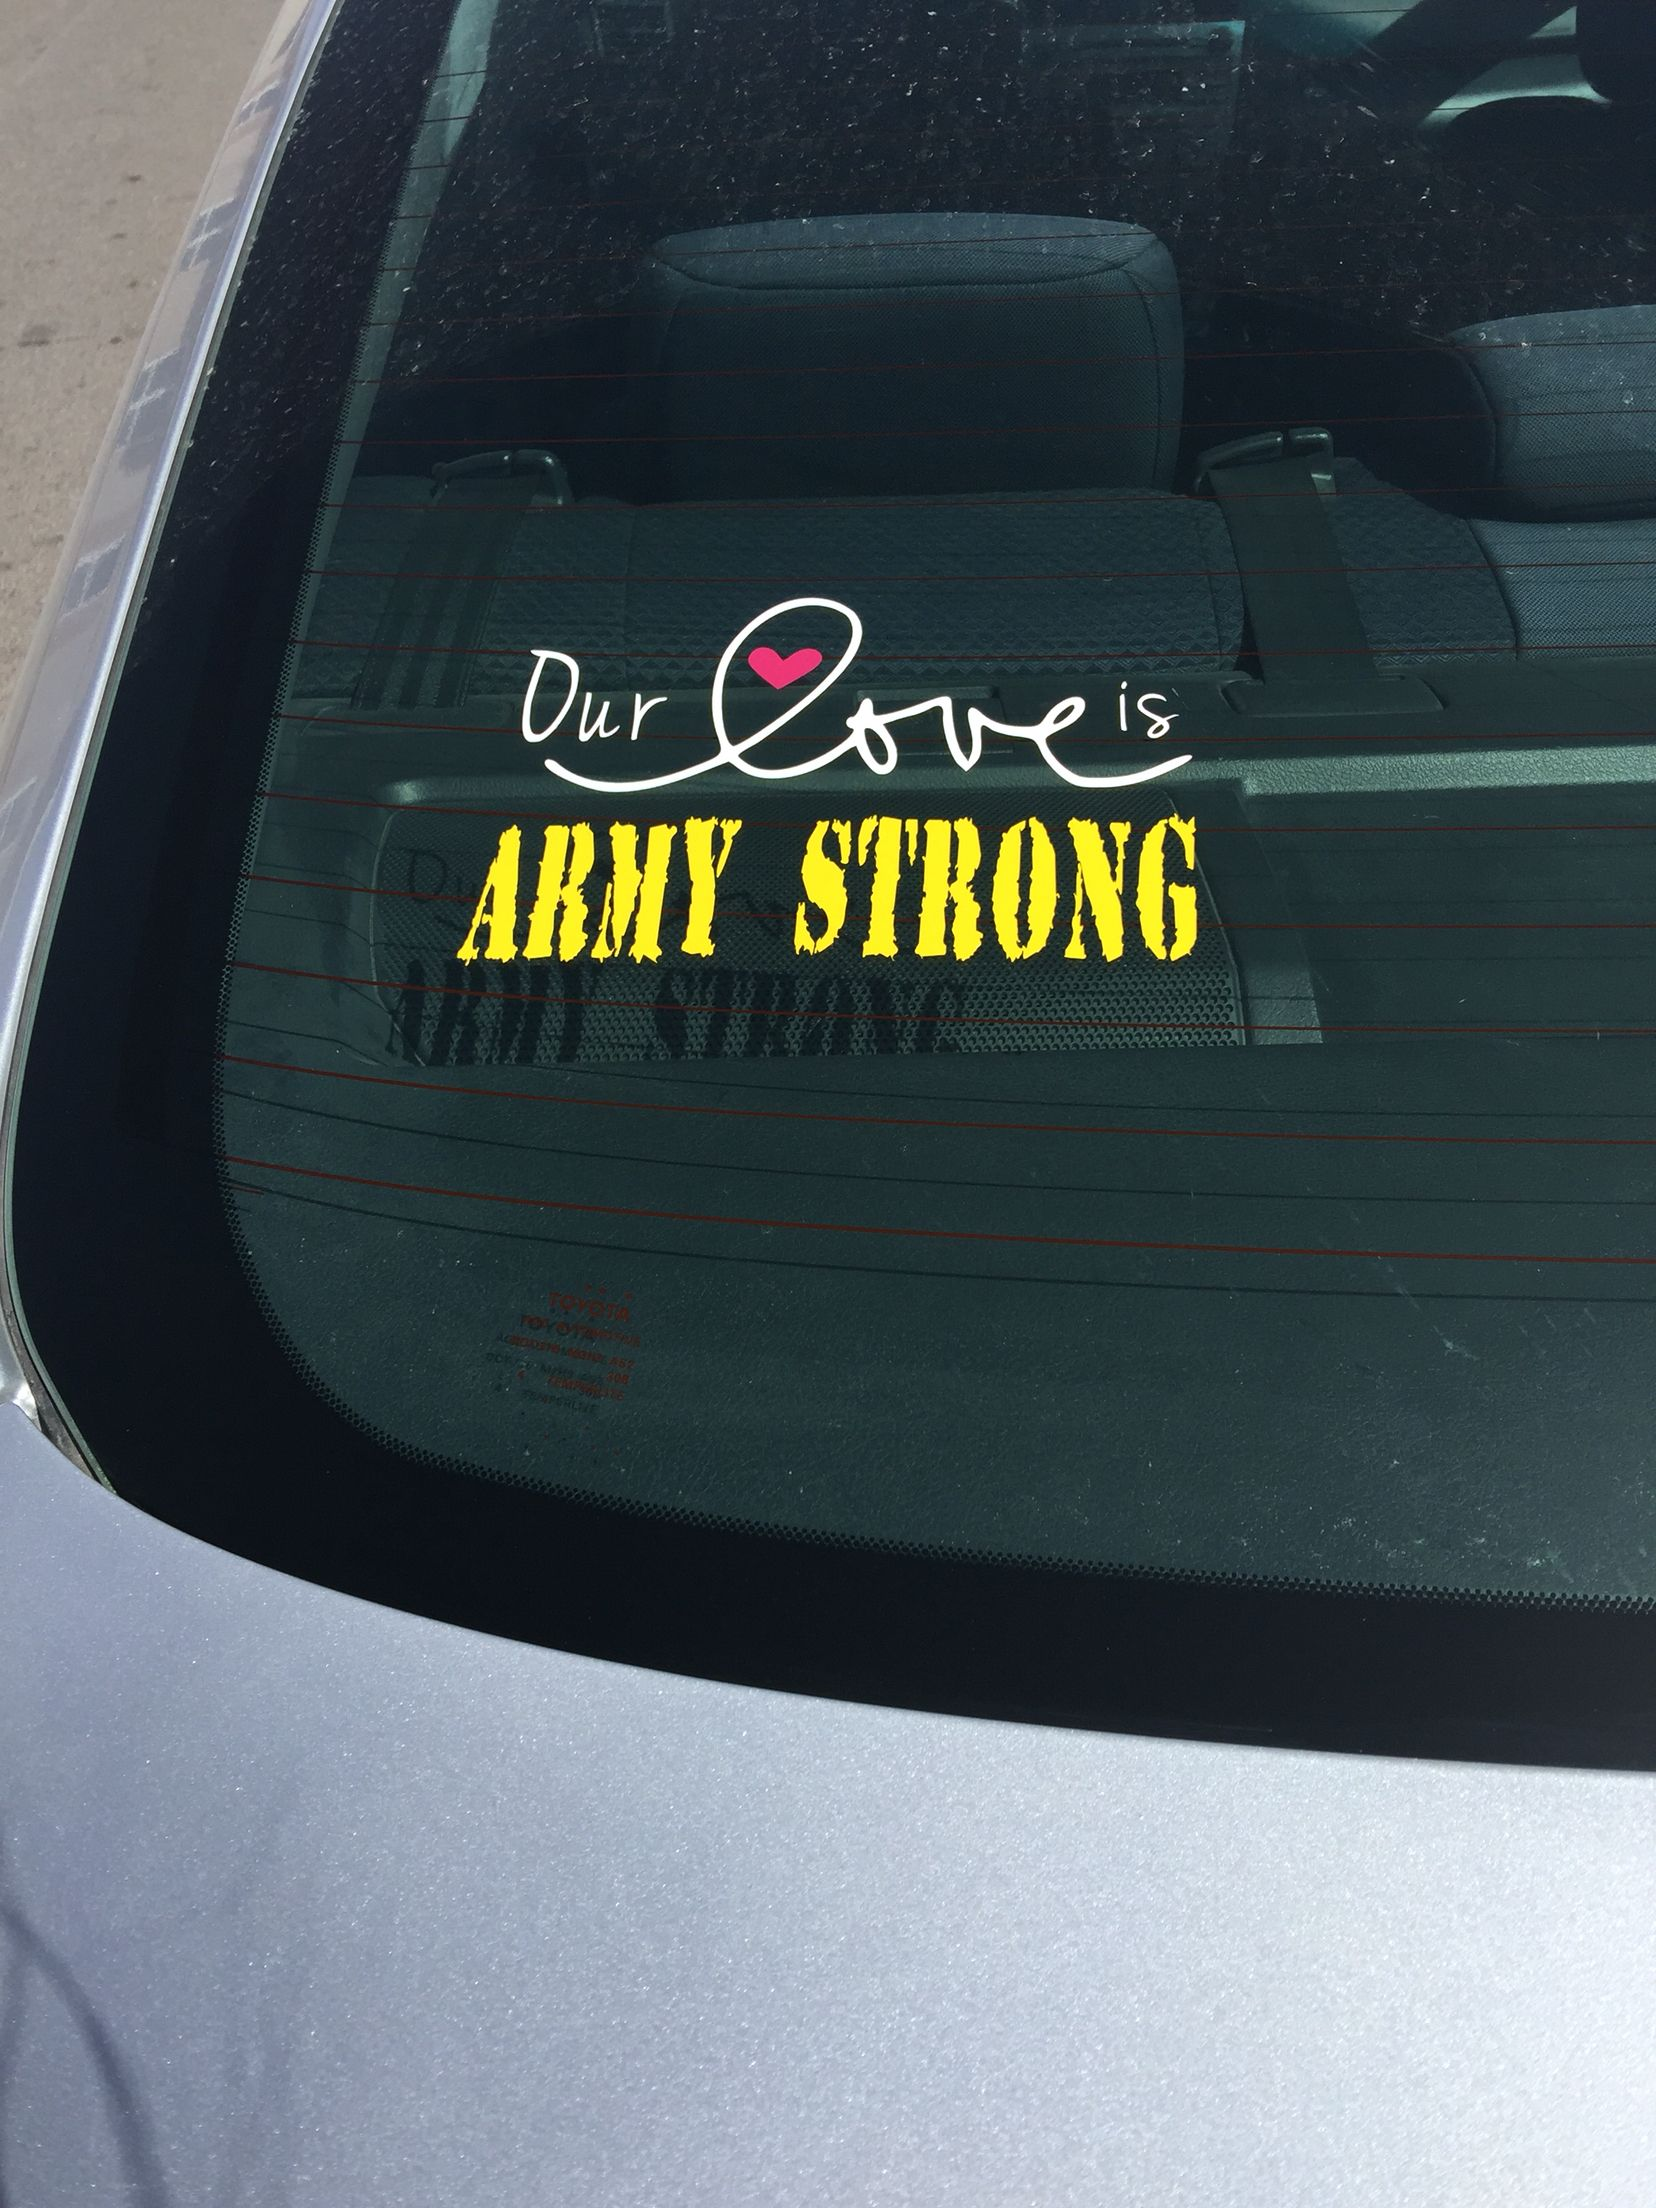 Army Strong Car Decal Army Wife Life Army Strong Army Spouse [ 2208 x 1656 Pixel ]